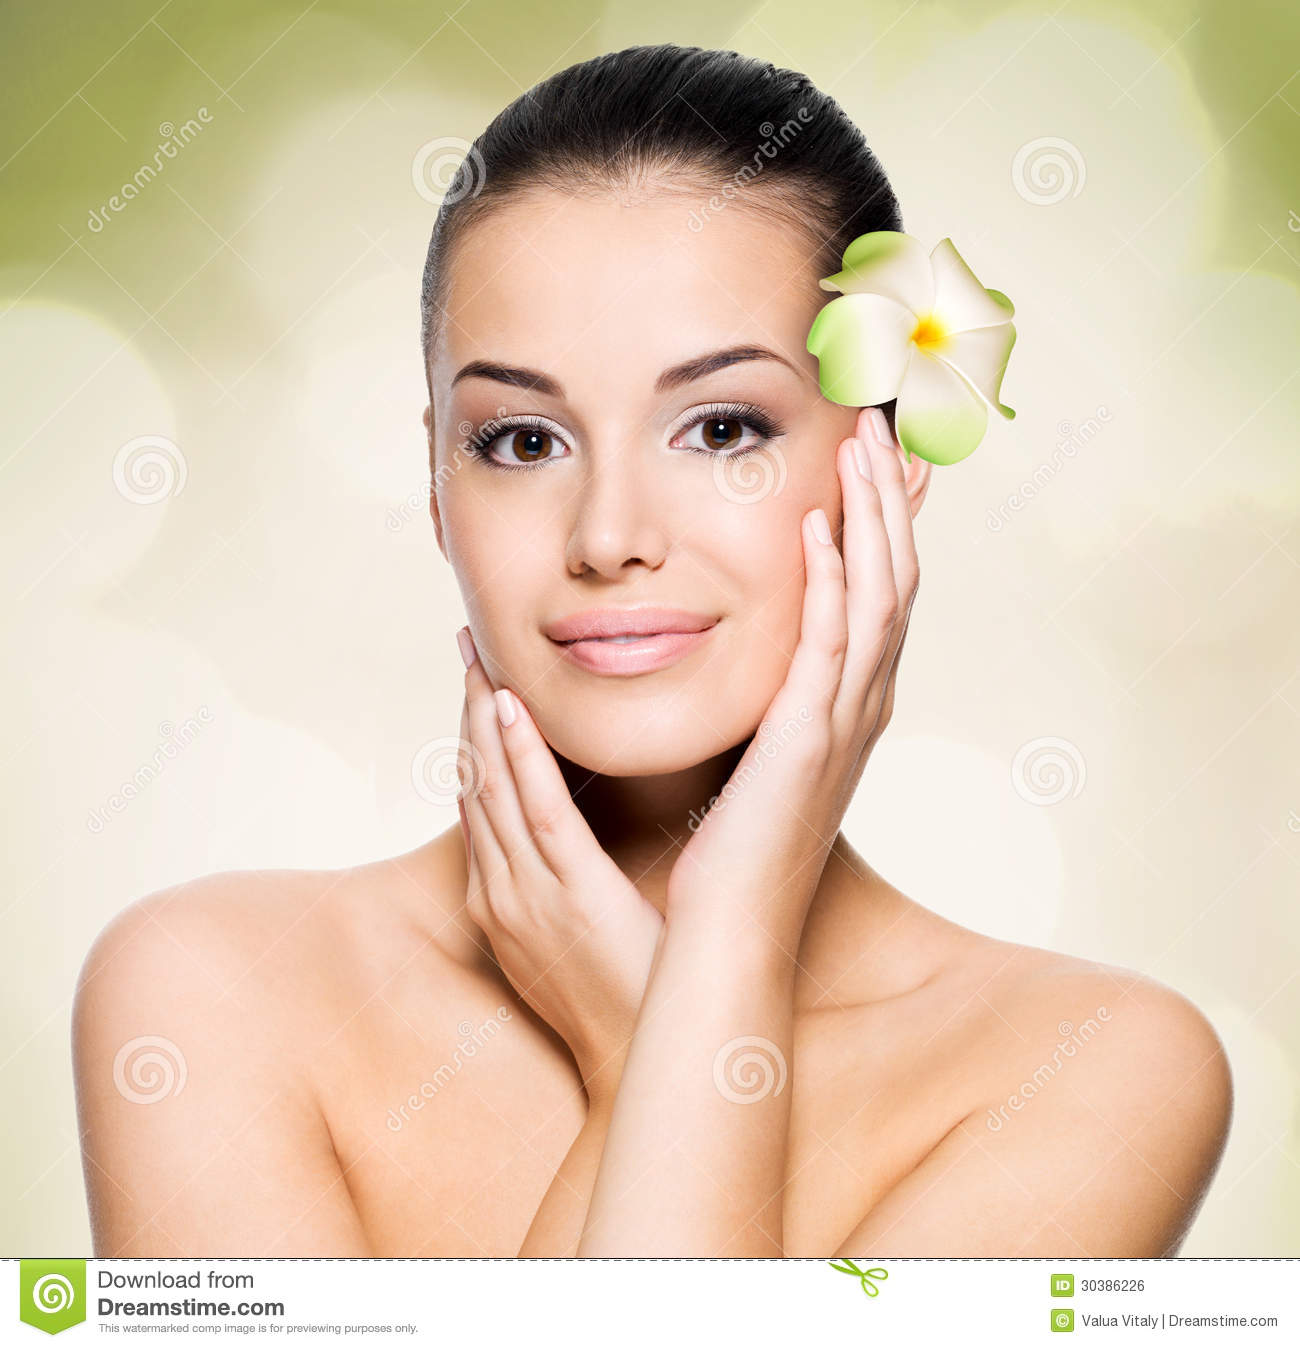 Healthy Skin Care: Woman With Healthy Skin Face Royalty Free Stock Image